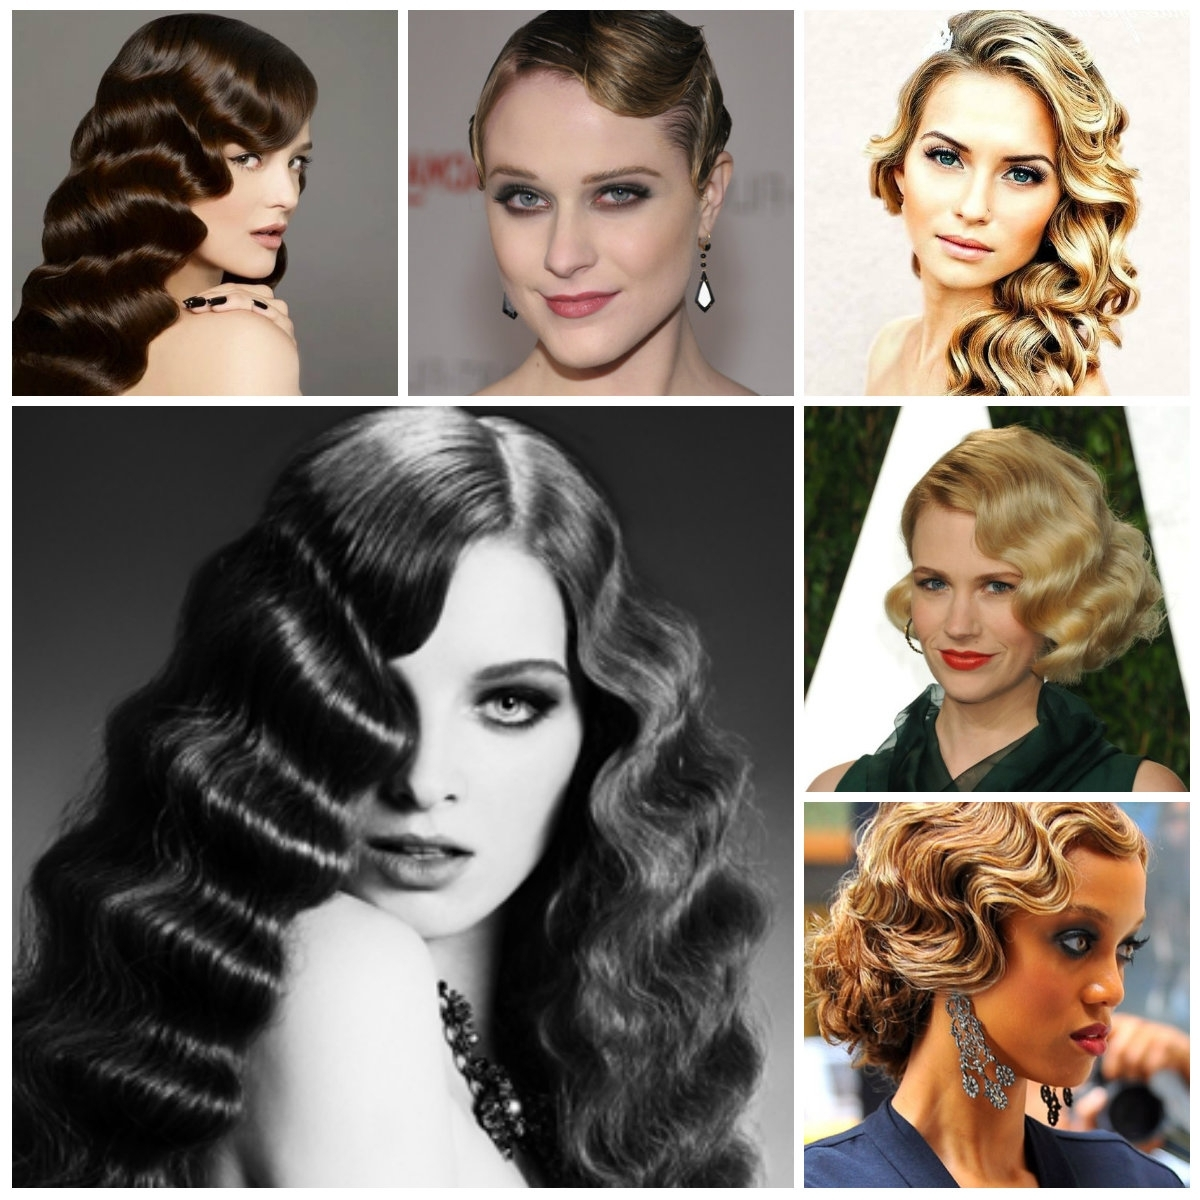 Haircuts, Hairstyles 2019 And Hair Colors For Pertaining To Most Recent Vintage Curls Ponytail Hairstyles (View 9 of 20)